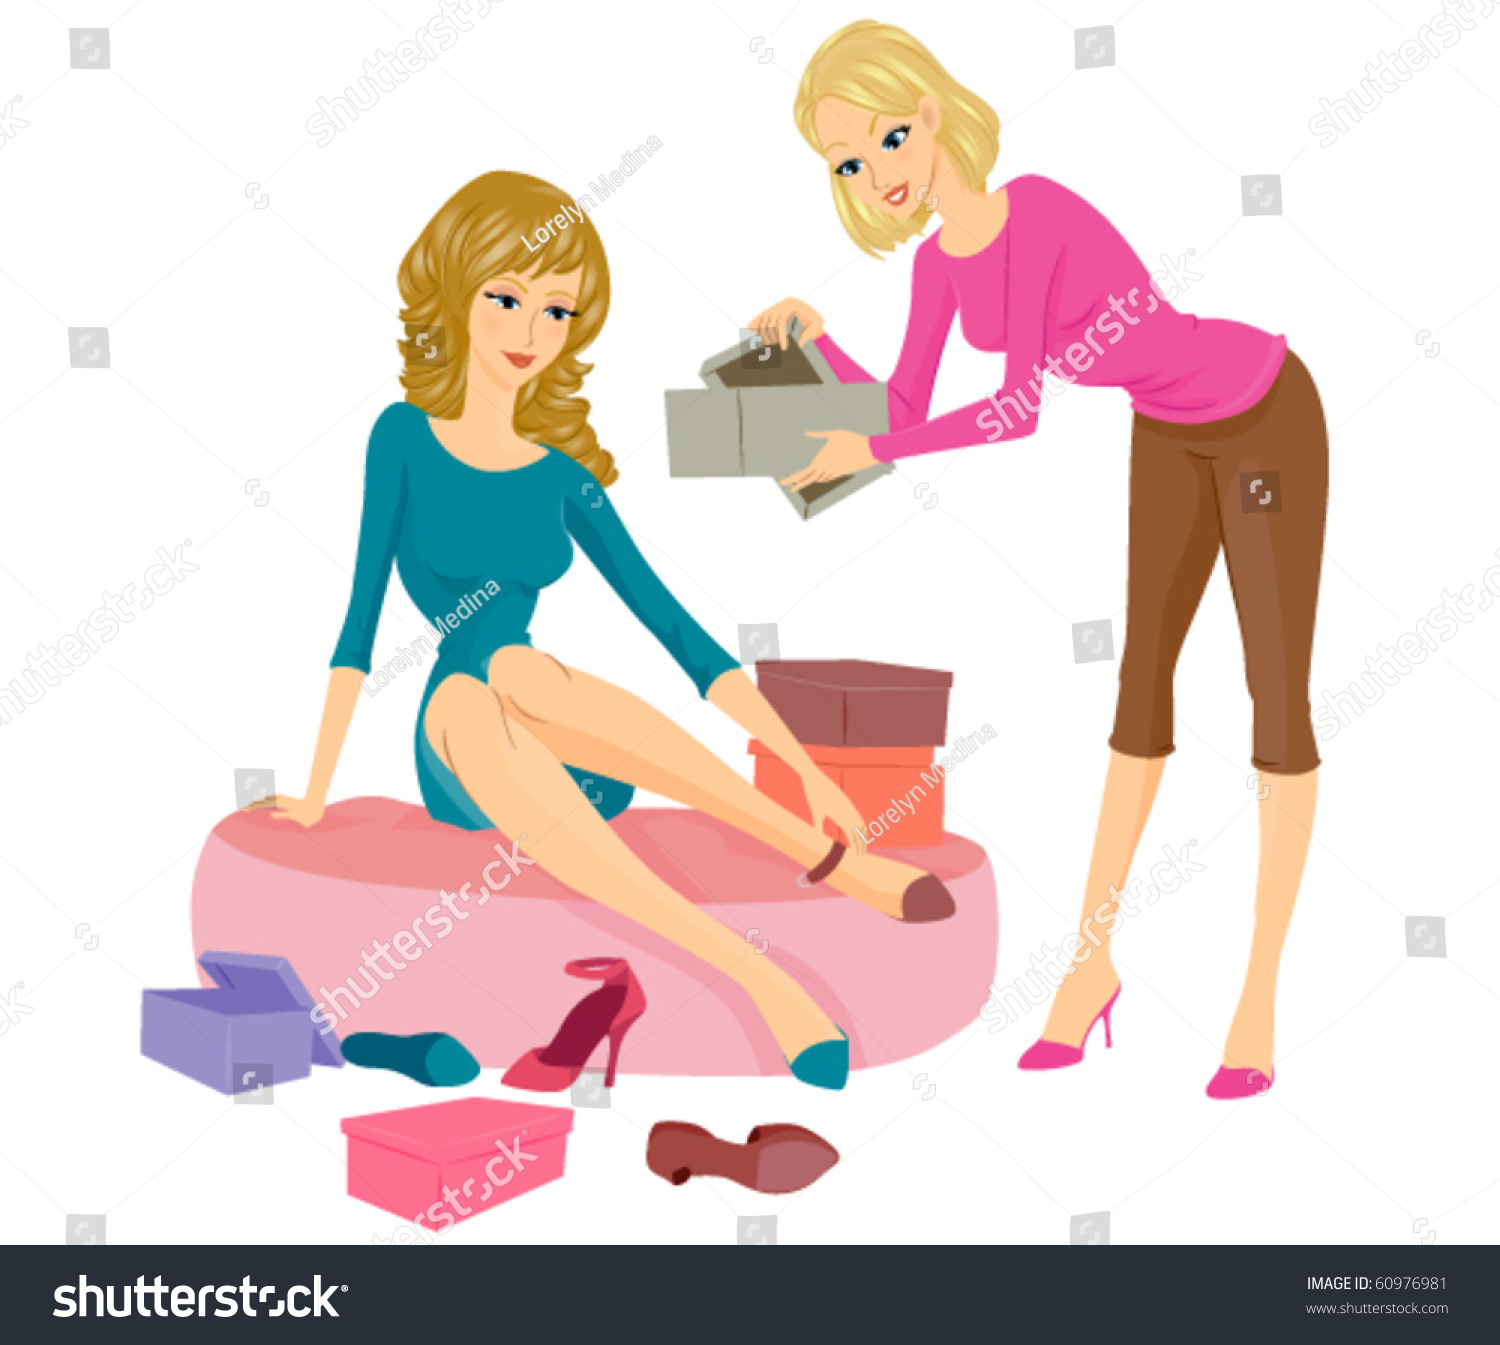 female s clerk assisting w sitting stock vector  a female s clerk assisting a w sitting on a cushy seat while trying on some